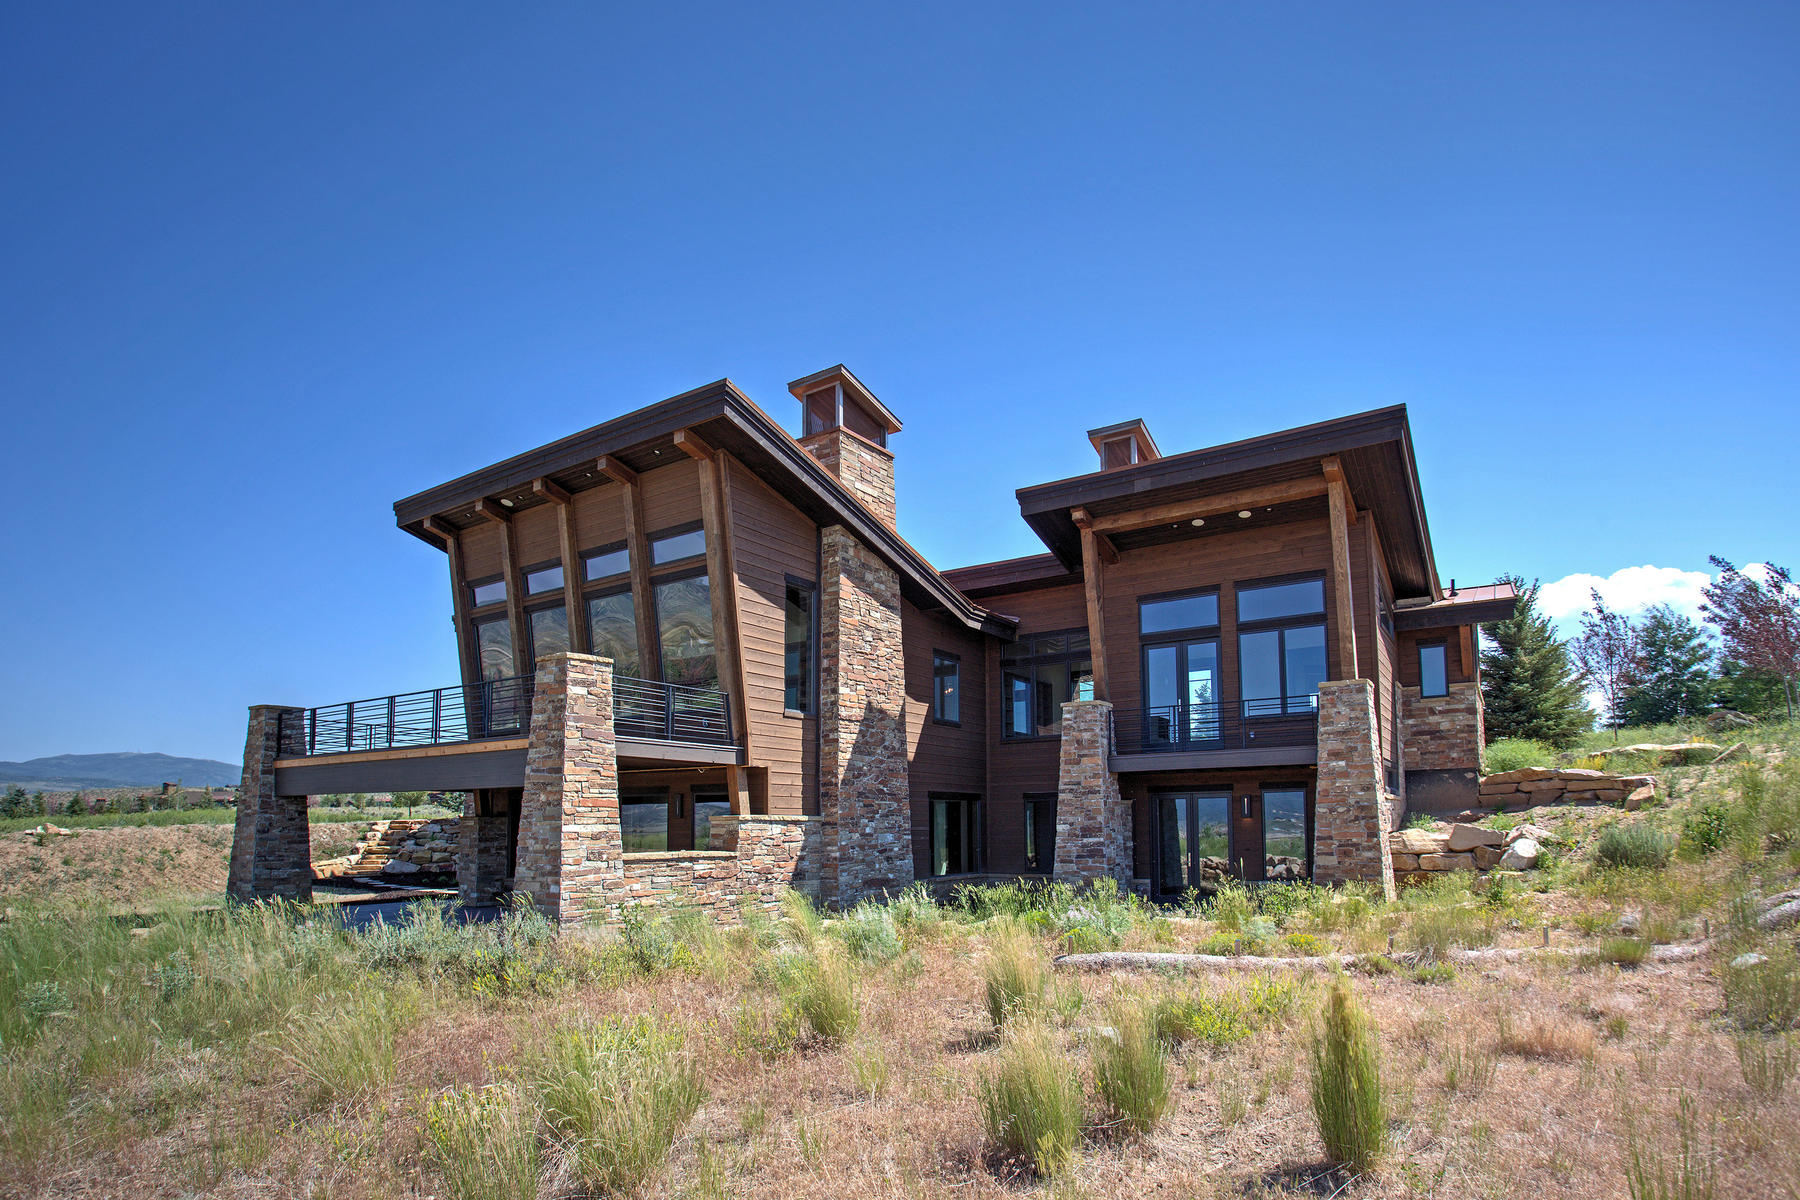 Tek Ailelik Ev için Satış at New Construction in Promontory with Panoramic Views of Park City's Three Ski Res 6803 Cody Trail Park City, Utah, 84098 Amerika Birleşik Devletleri